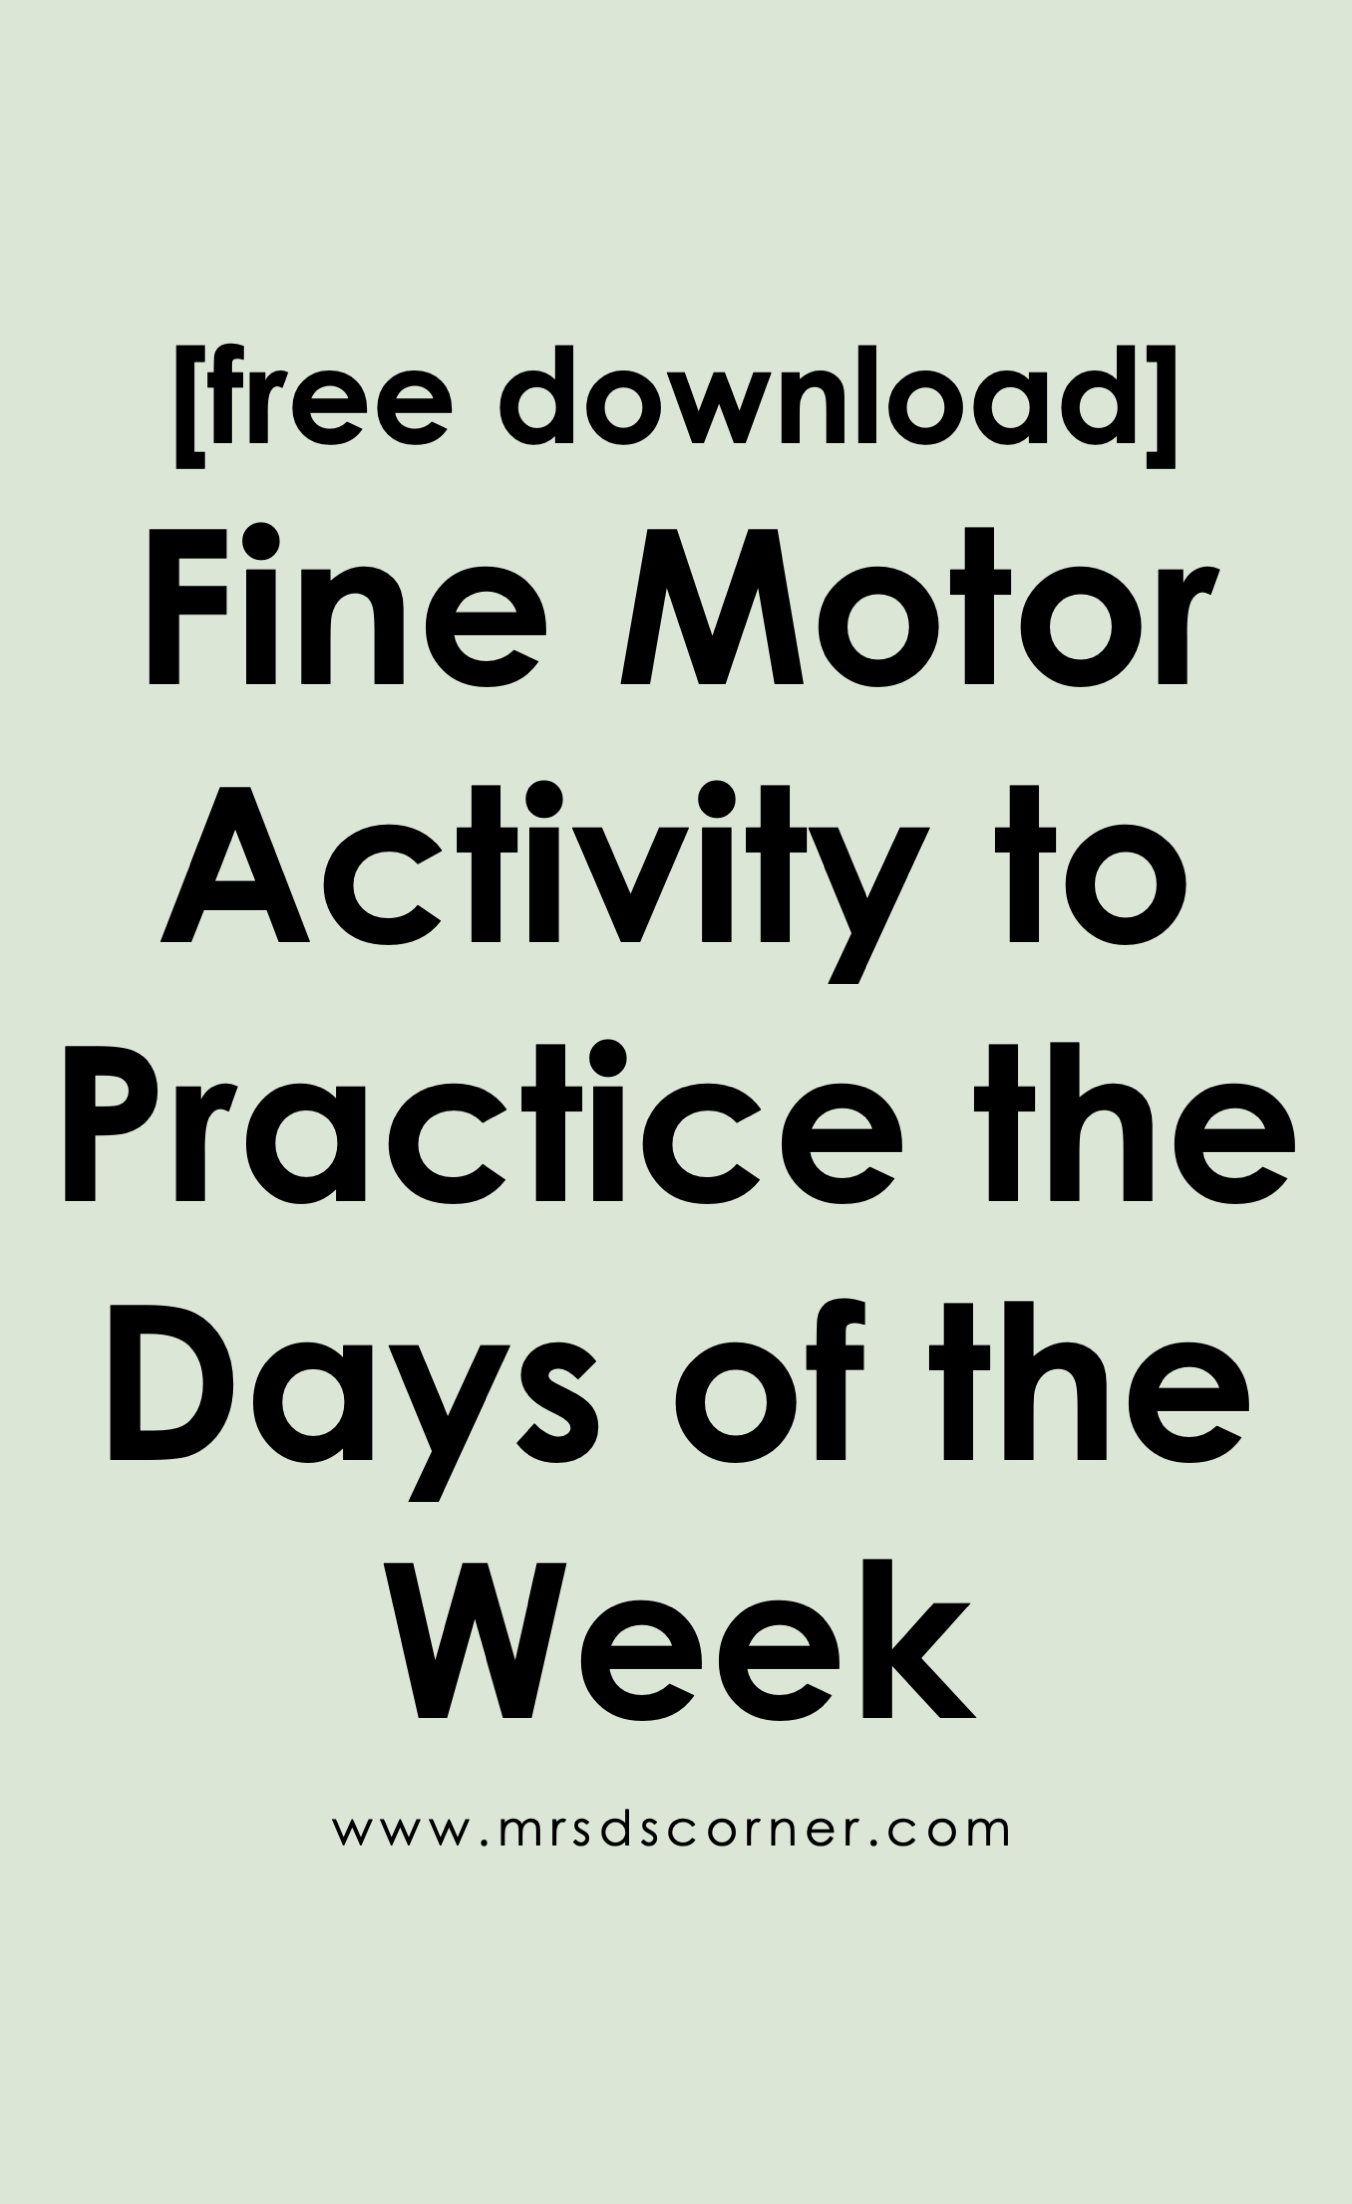 Fine Motor Spelling For Days Of The Week Free Download